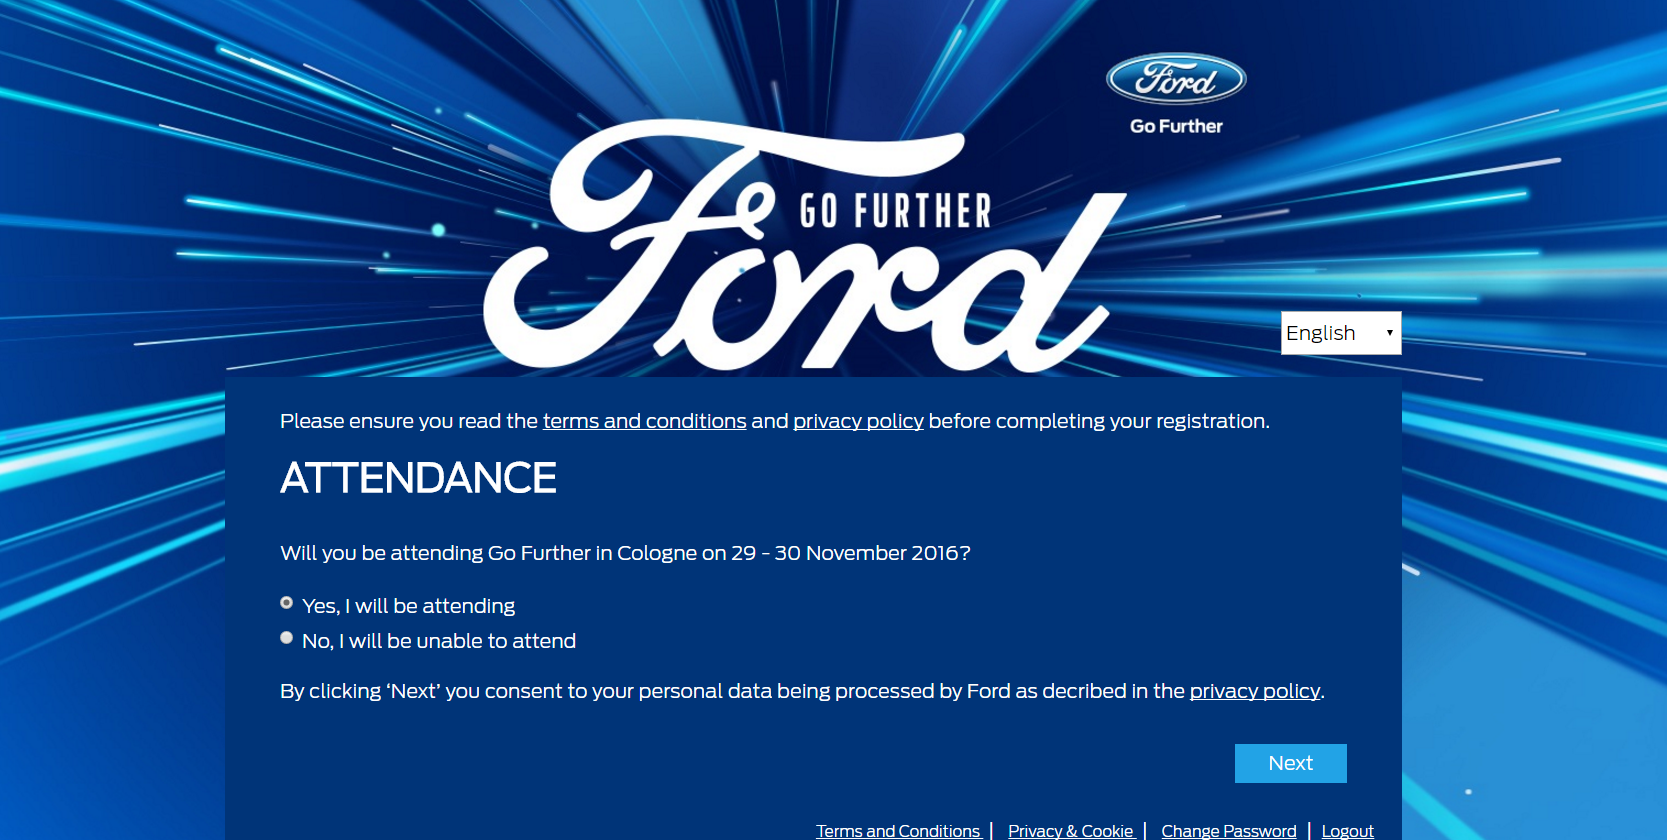 Ford-Go-Further-Registration-site